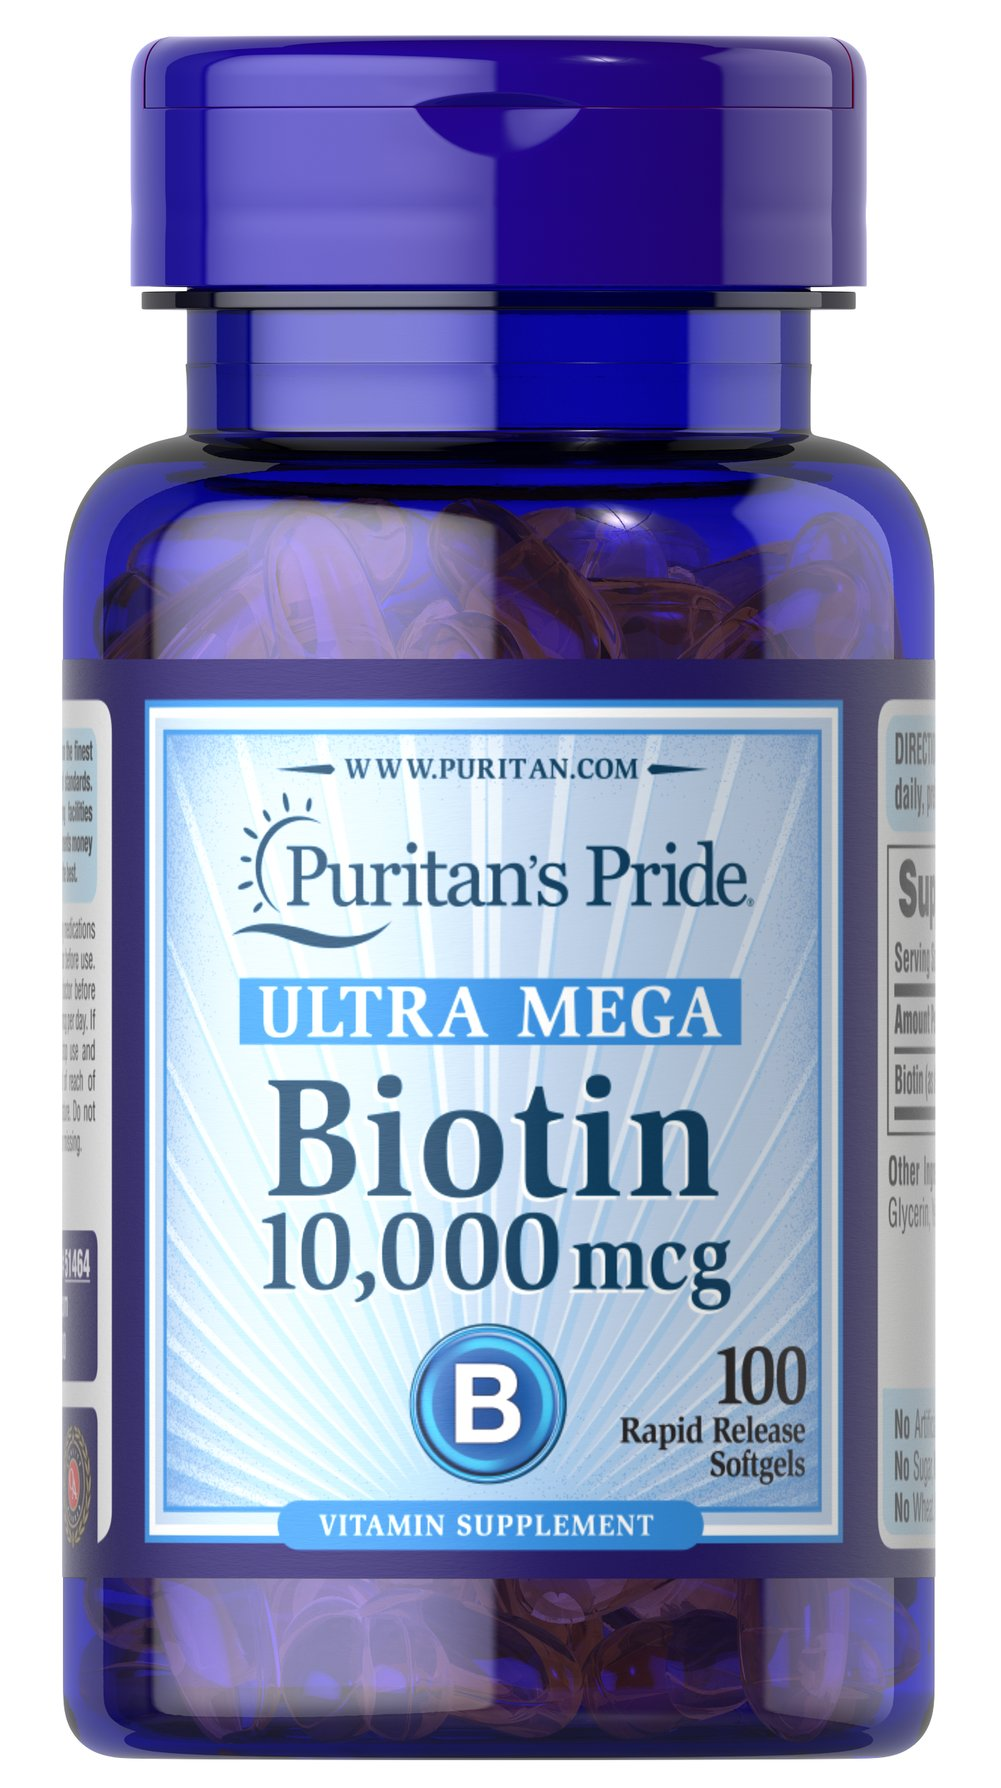 Biotin 10,000 mcg <p>Helps promote skin, hair and nail health.**</p><p>Assists protein and fat metabolism for energy use.**</p><p>Rapid release softgels.</p><p>Biotin helps promote skin, hair and nail health so you can look and feel your best.** Just one Ultra Mega Biotin softgel provides 10,000mcg of Biotin, also known to assist in protein and fat metabolism for energy use.** Includes 50 rapid release softgels.</p><p></p> 100 Softgels